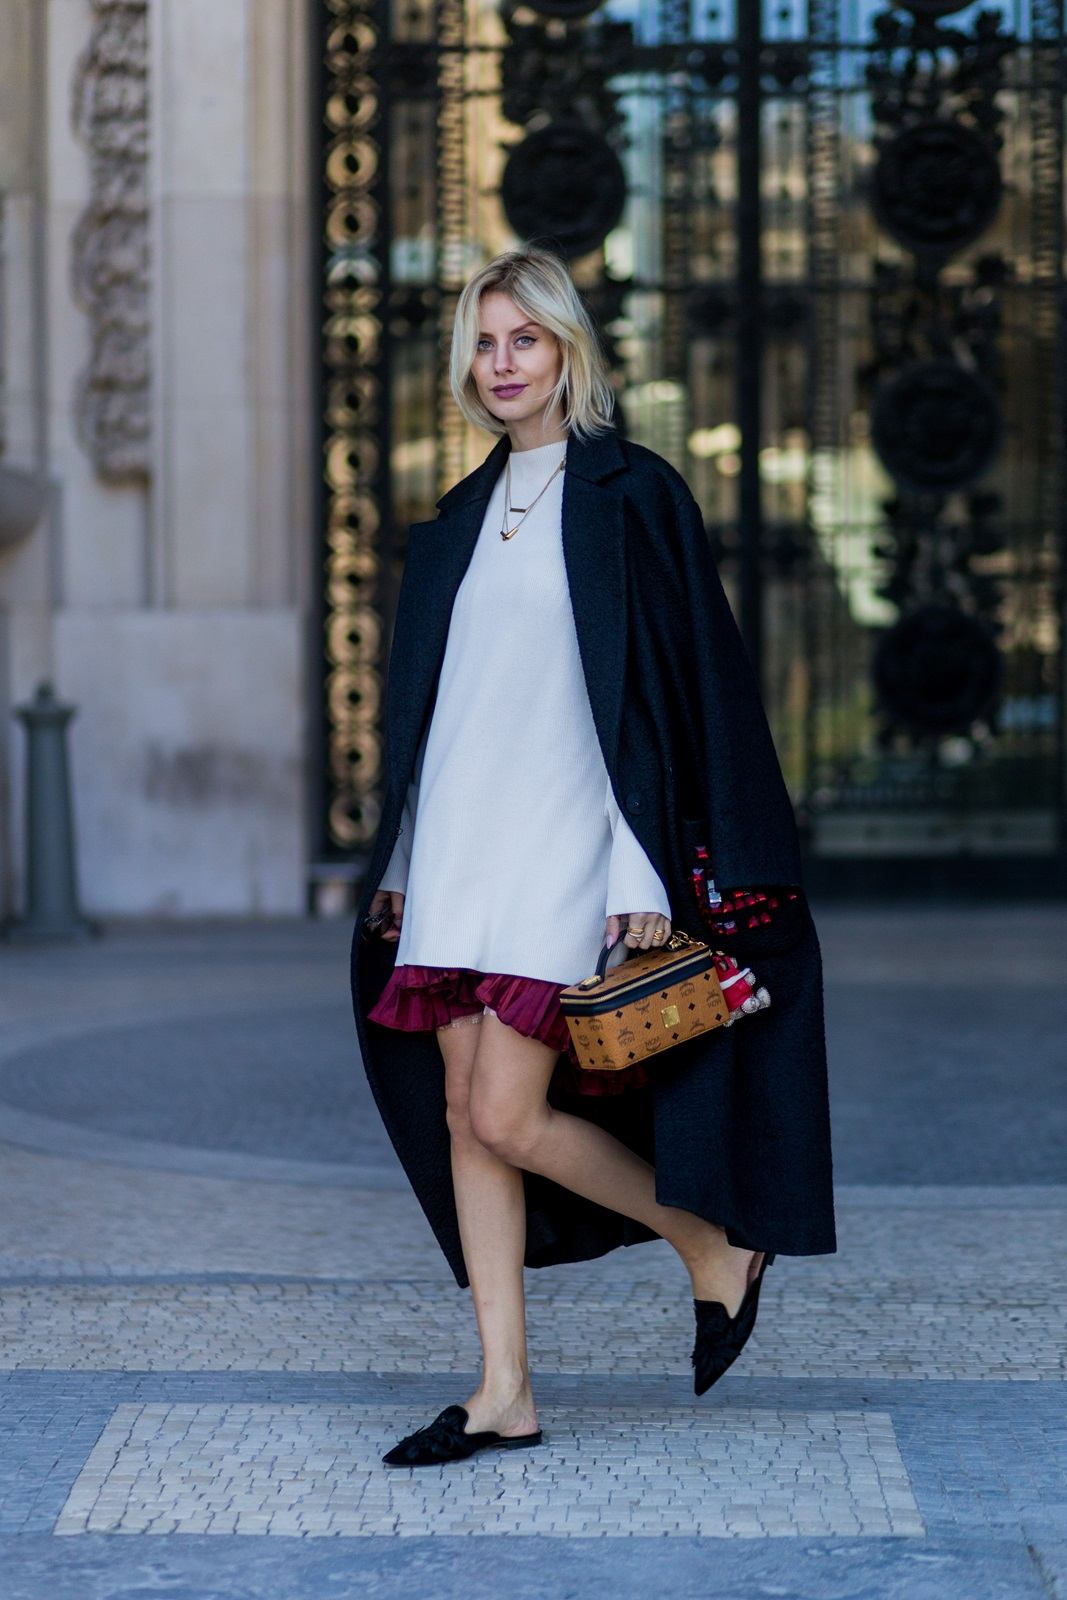 PARIS, FRANCE - OCTOBER 04: German fashion blogger Lisa Hahnbueck (@lisarvd) wearing Anya Hindmarch Oversize Coat, H&M Trend Knitdress, Storets Metallic Plissee Skirt, Alberta Ferretti Velvet & Embroidered Flats, MCM Rockstar Beautycase MCM Teddy Bear Charm on October 4, 2016 in Paris, France. (Photo by Christian Vierig/Getty Images) *** Local Caption *** Lisa Hahnbueck